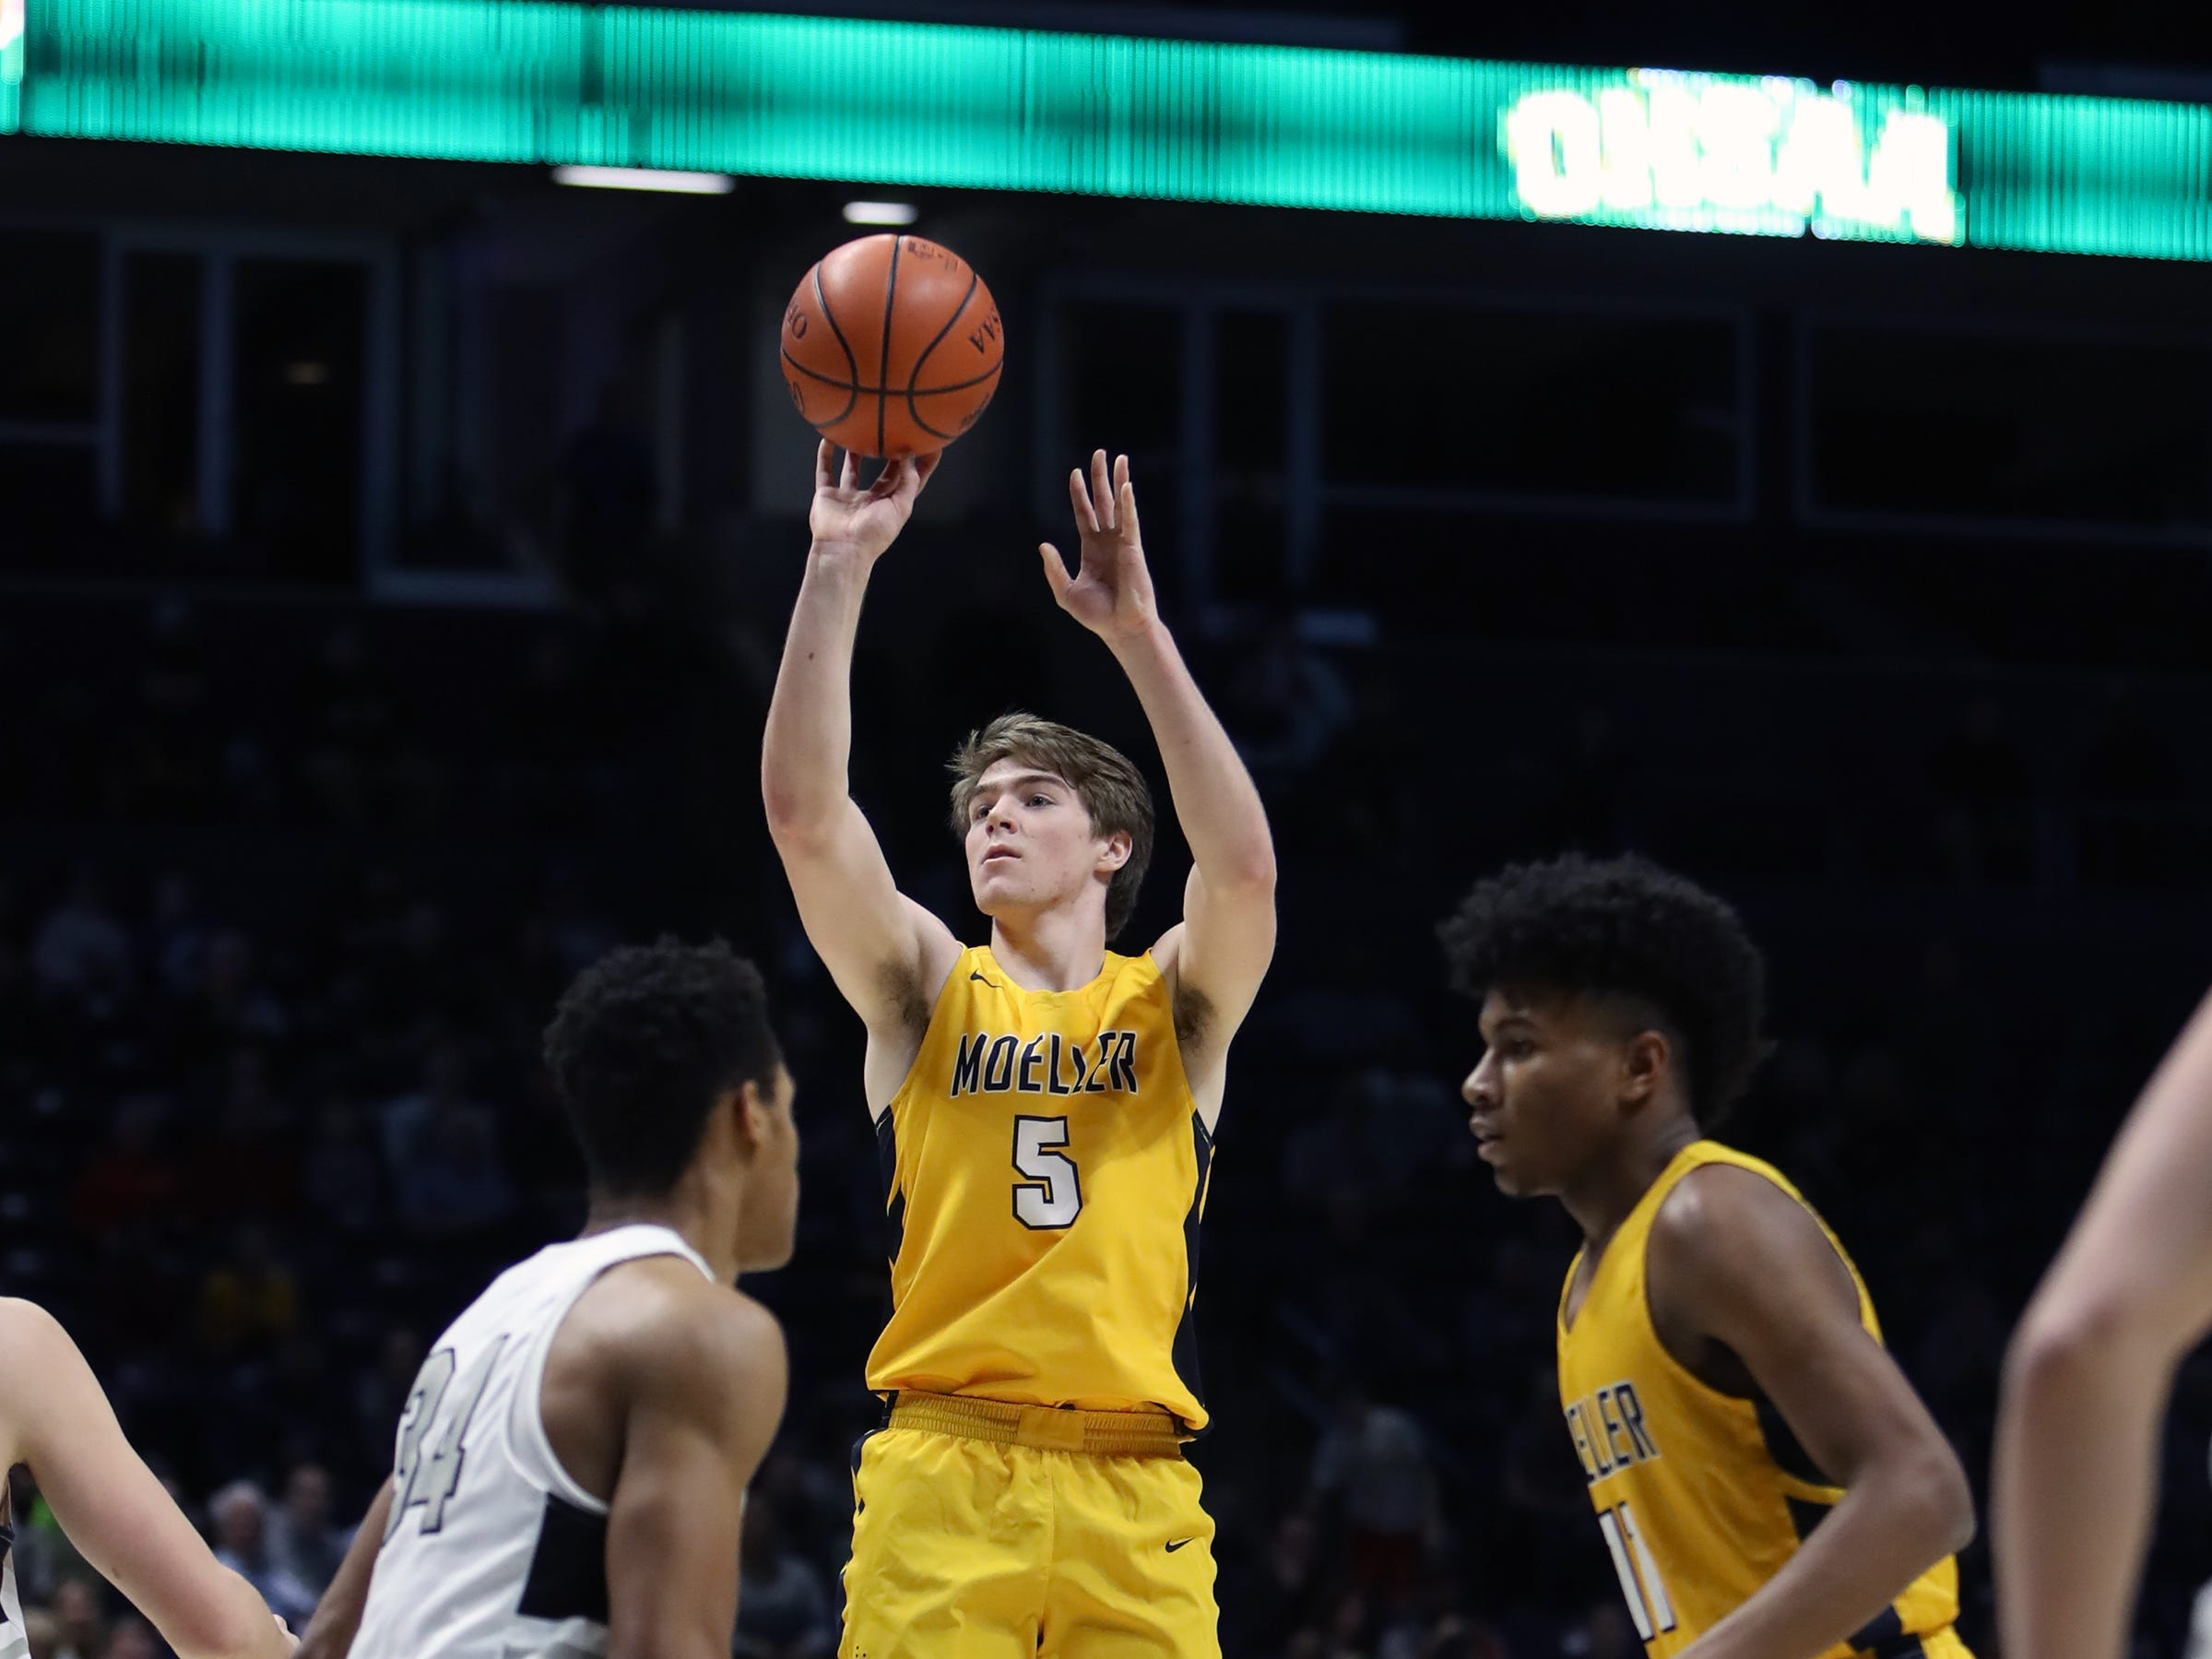 Moeller guard Alec Pfriem attempts a jump shot in the first half in the boys regional semifinal at the Cintas Center at Xavier University.